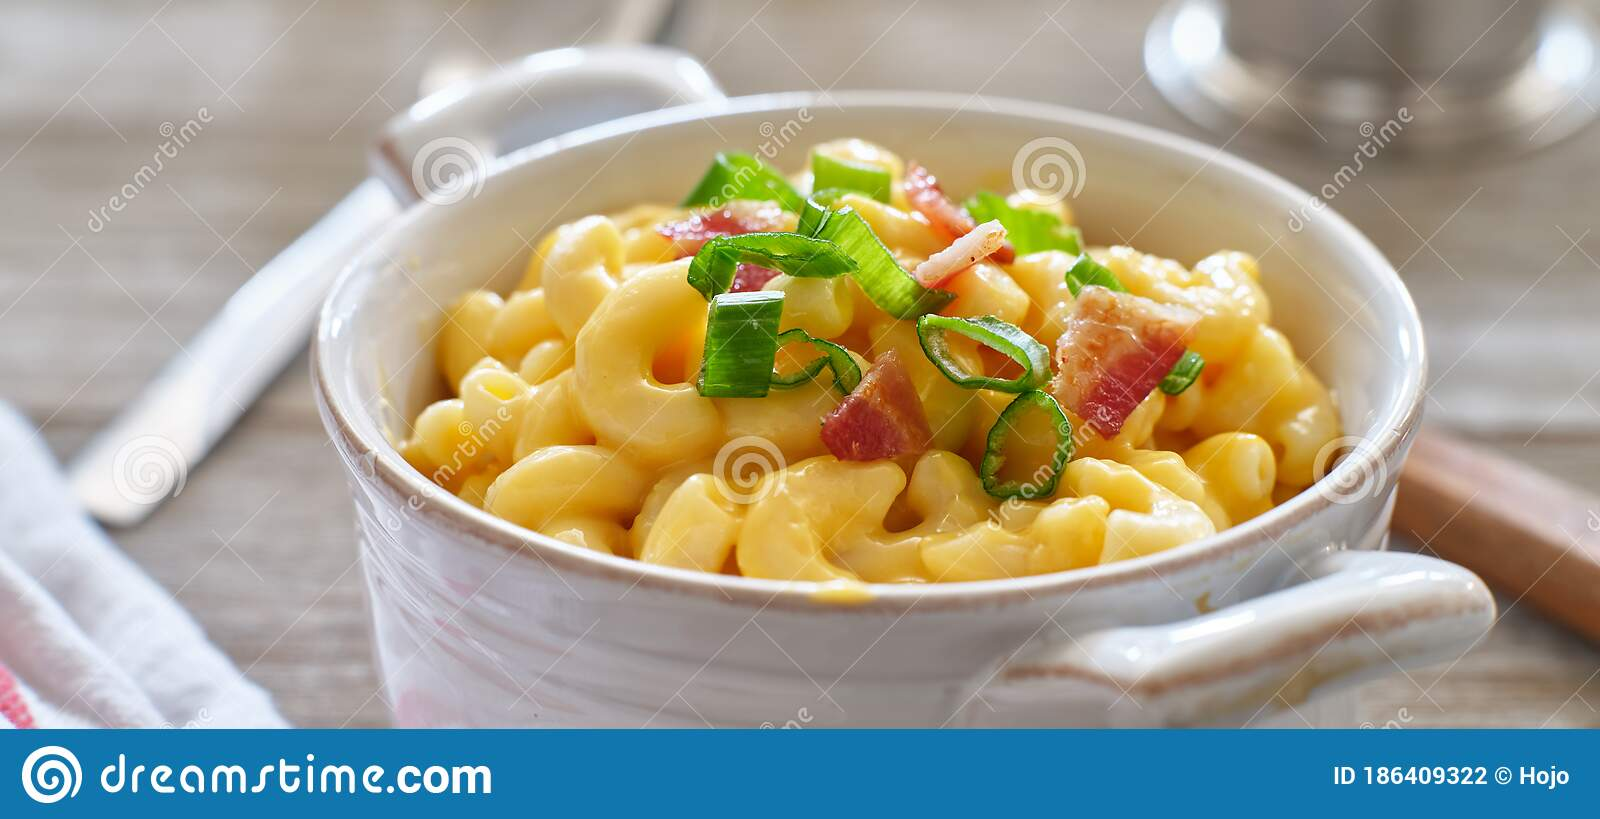 Mac And Cheese In Dish With Scallions And Bacon Garnish Stock Photo Image Of Onions Dinner 186409322